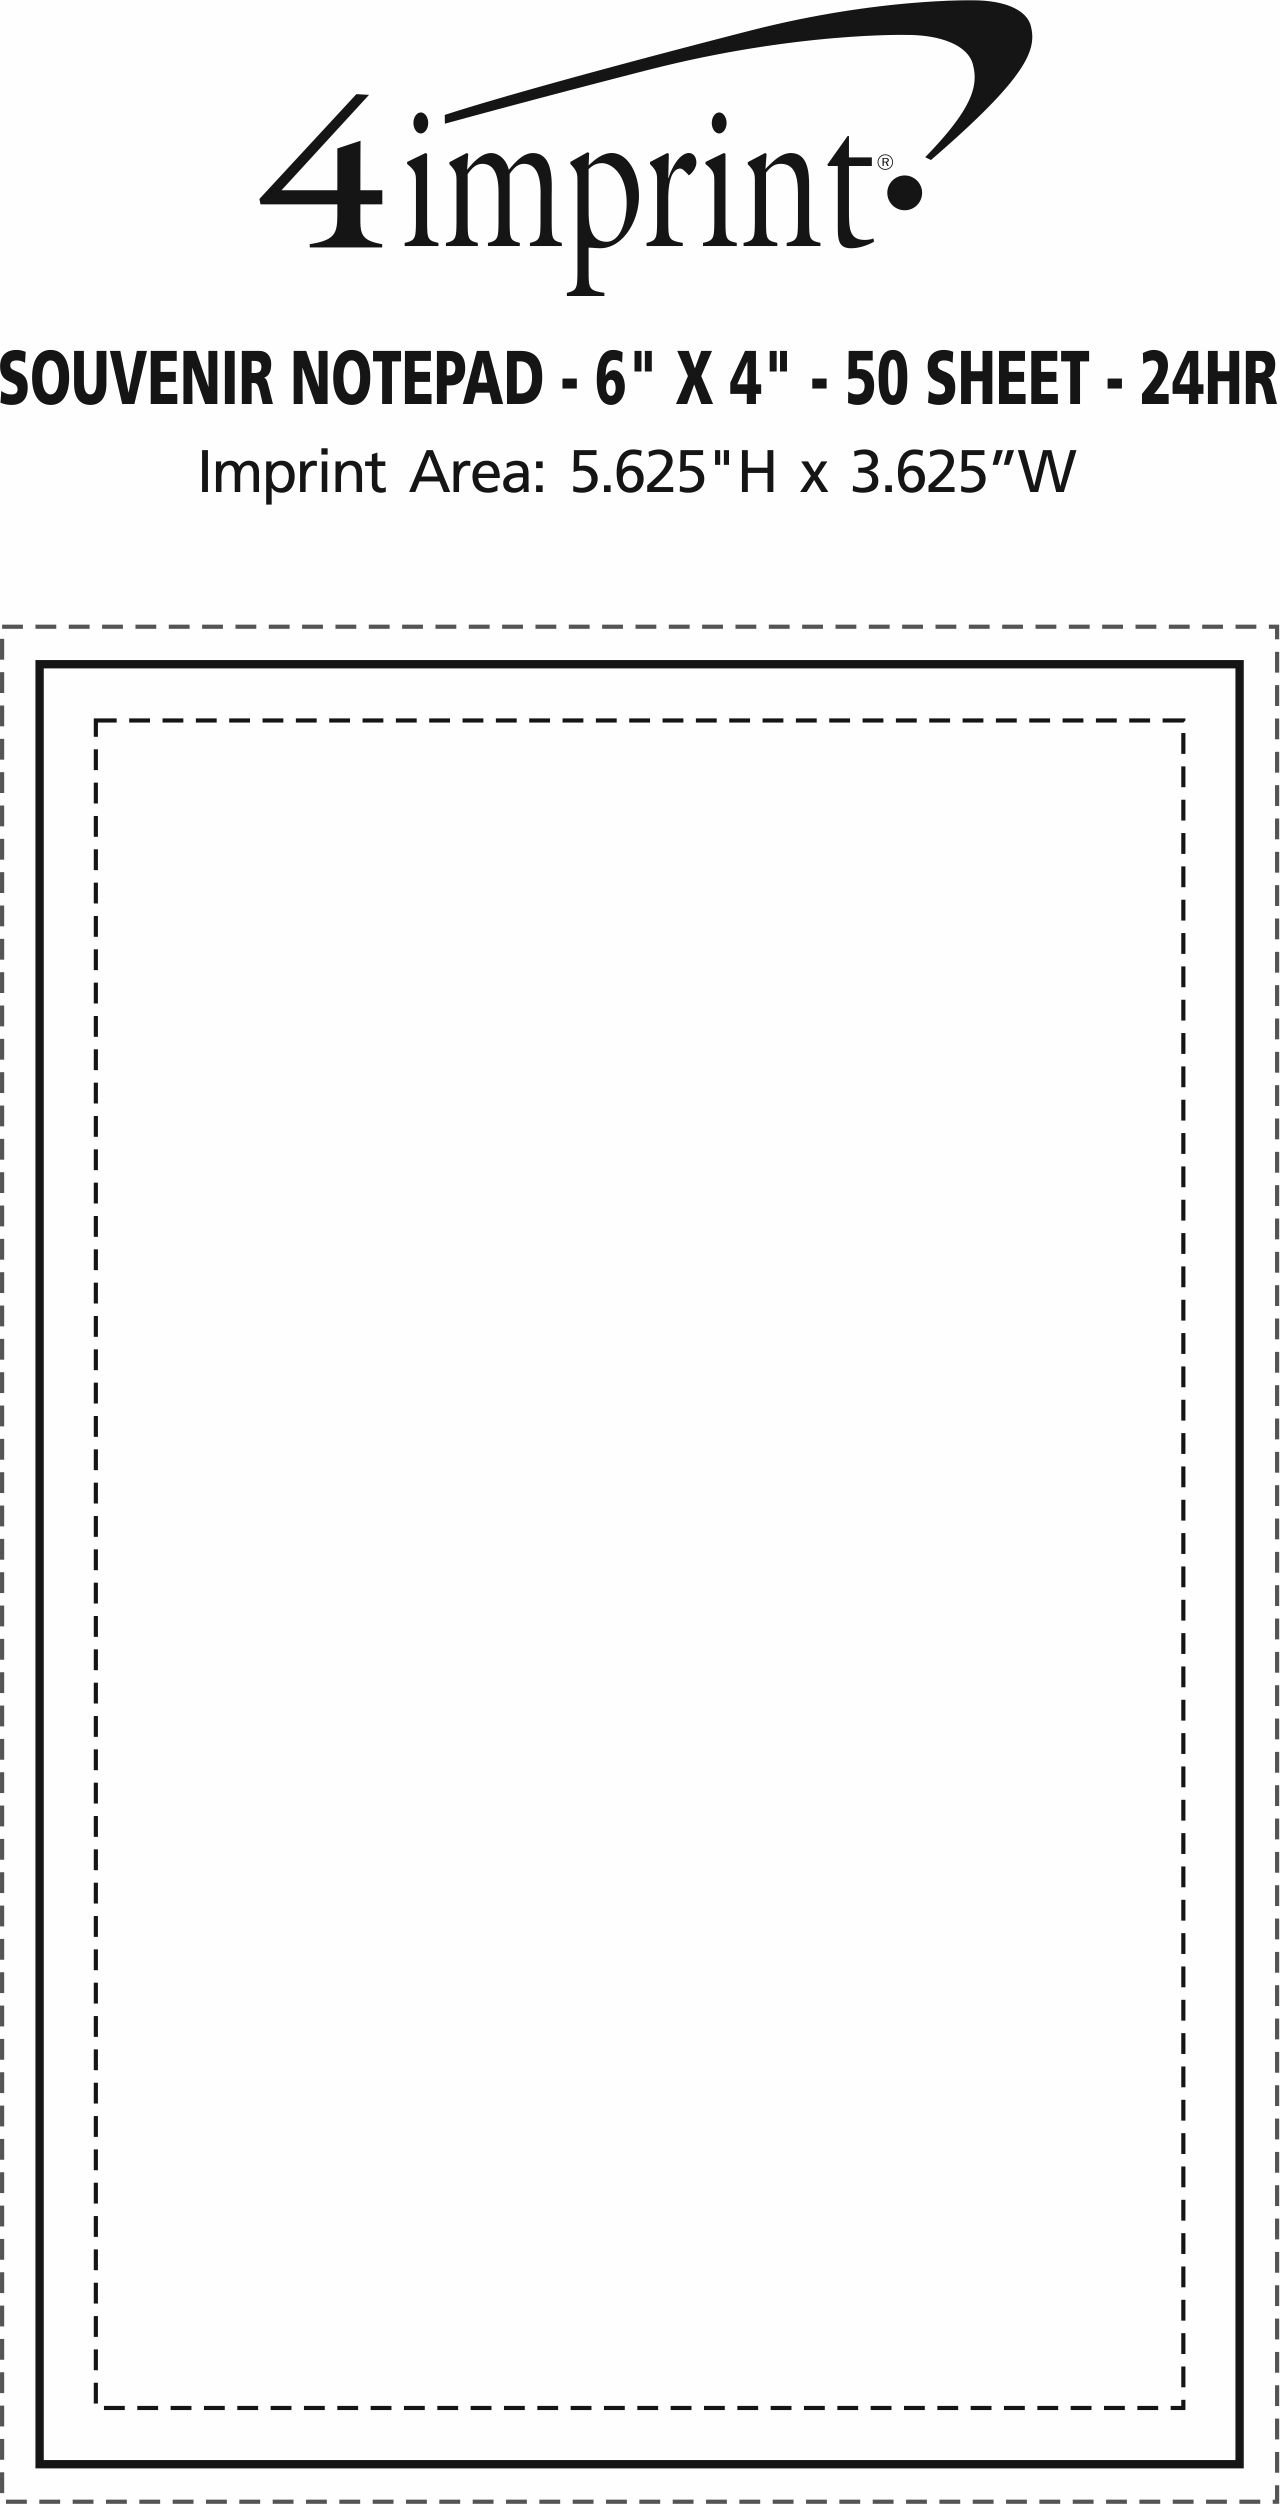 """Imprint Area of Bic Non-Adhesive Notepad - 6"""" x 4"""" - 50 Sheet - 24 hr"""